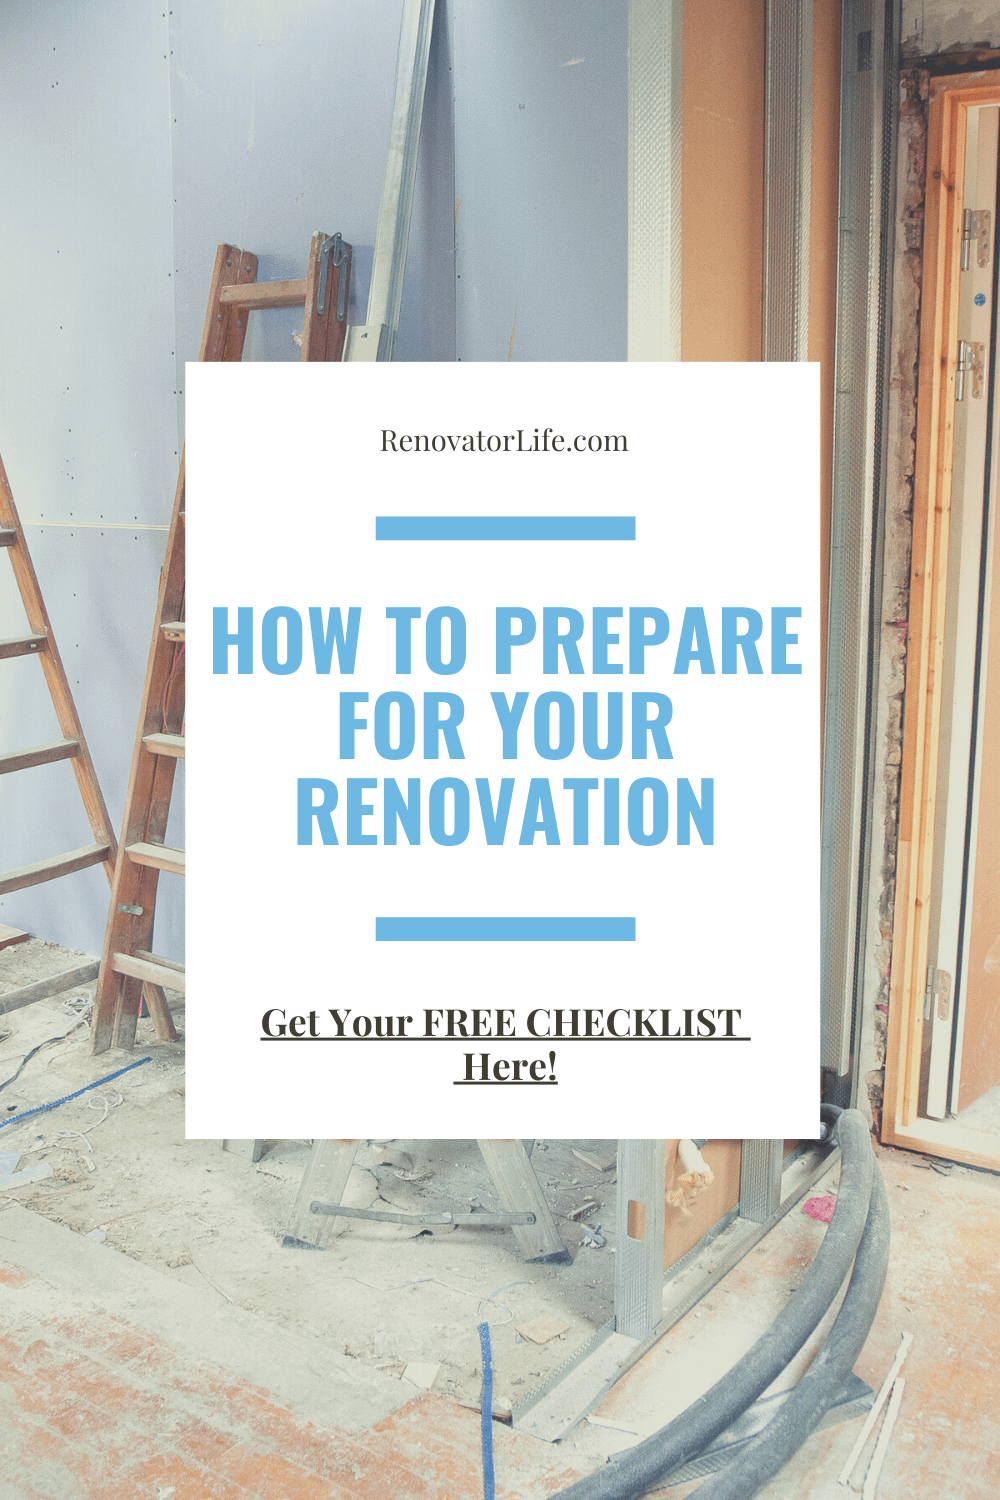 How to prepare for your renovation